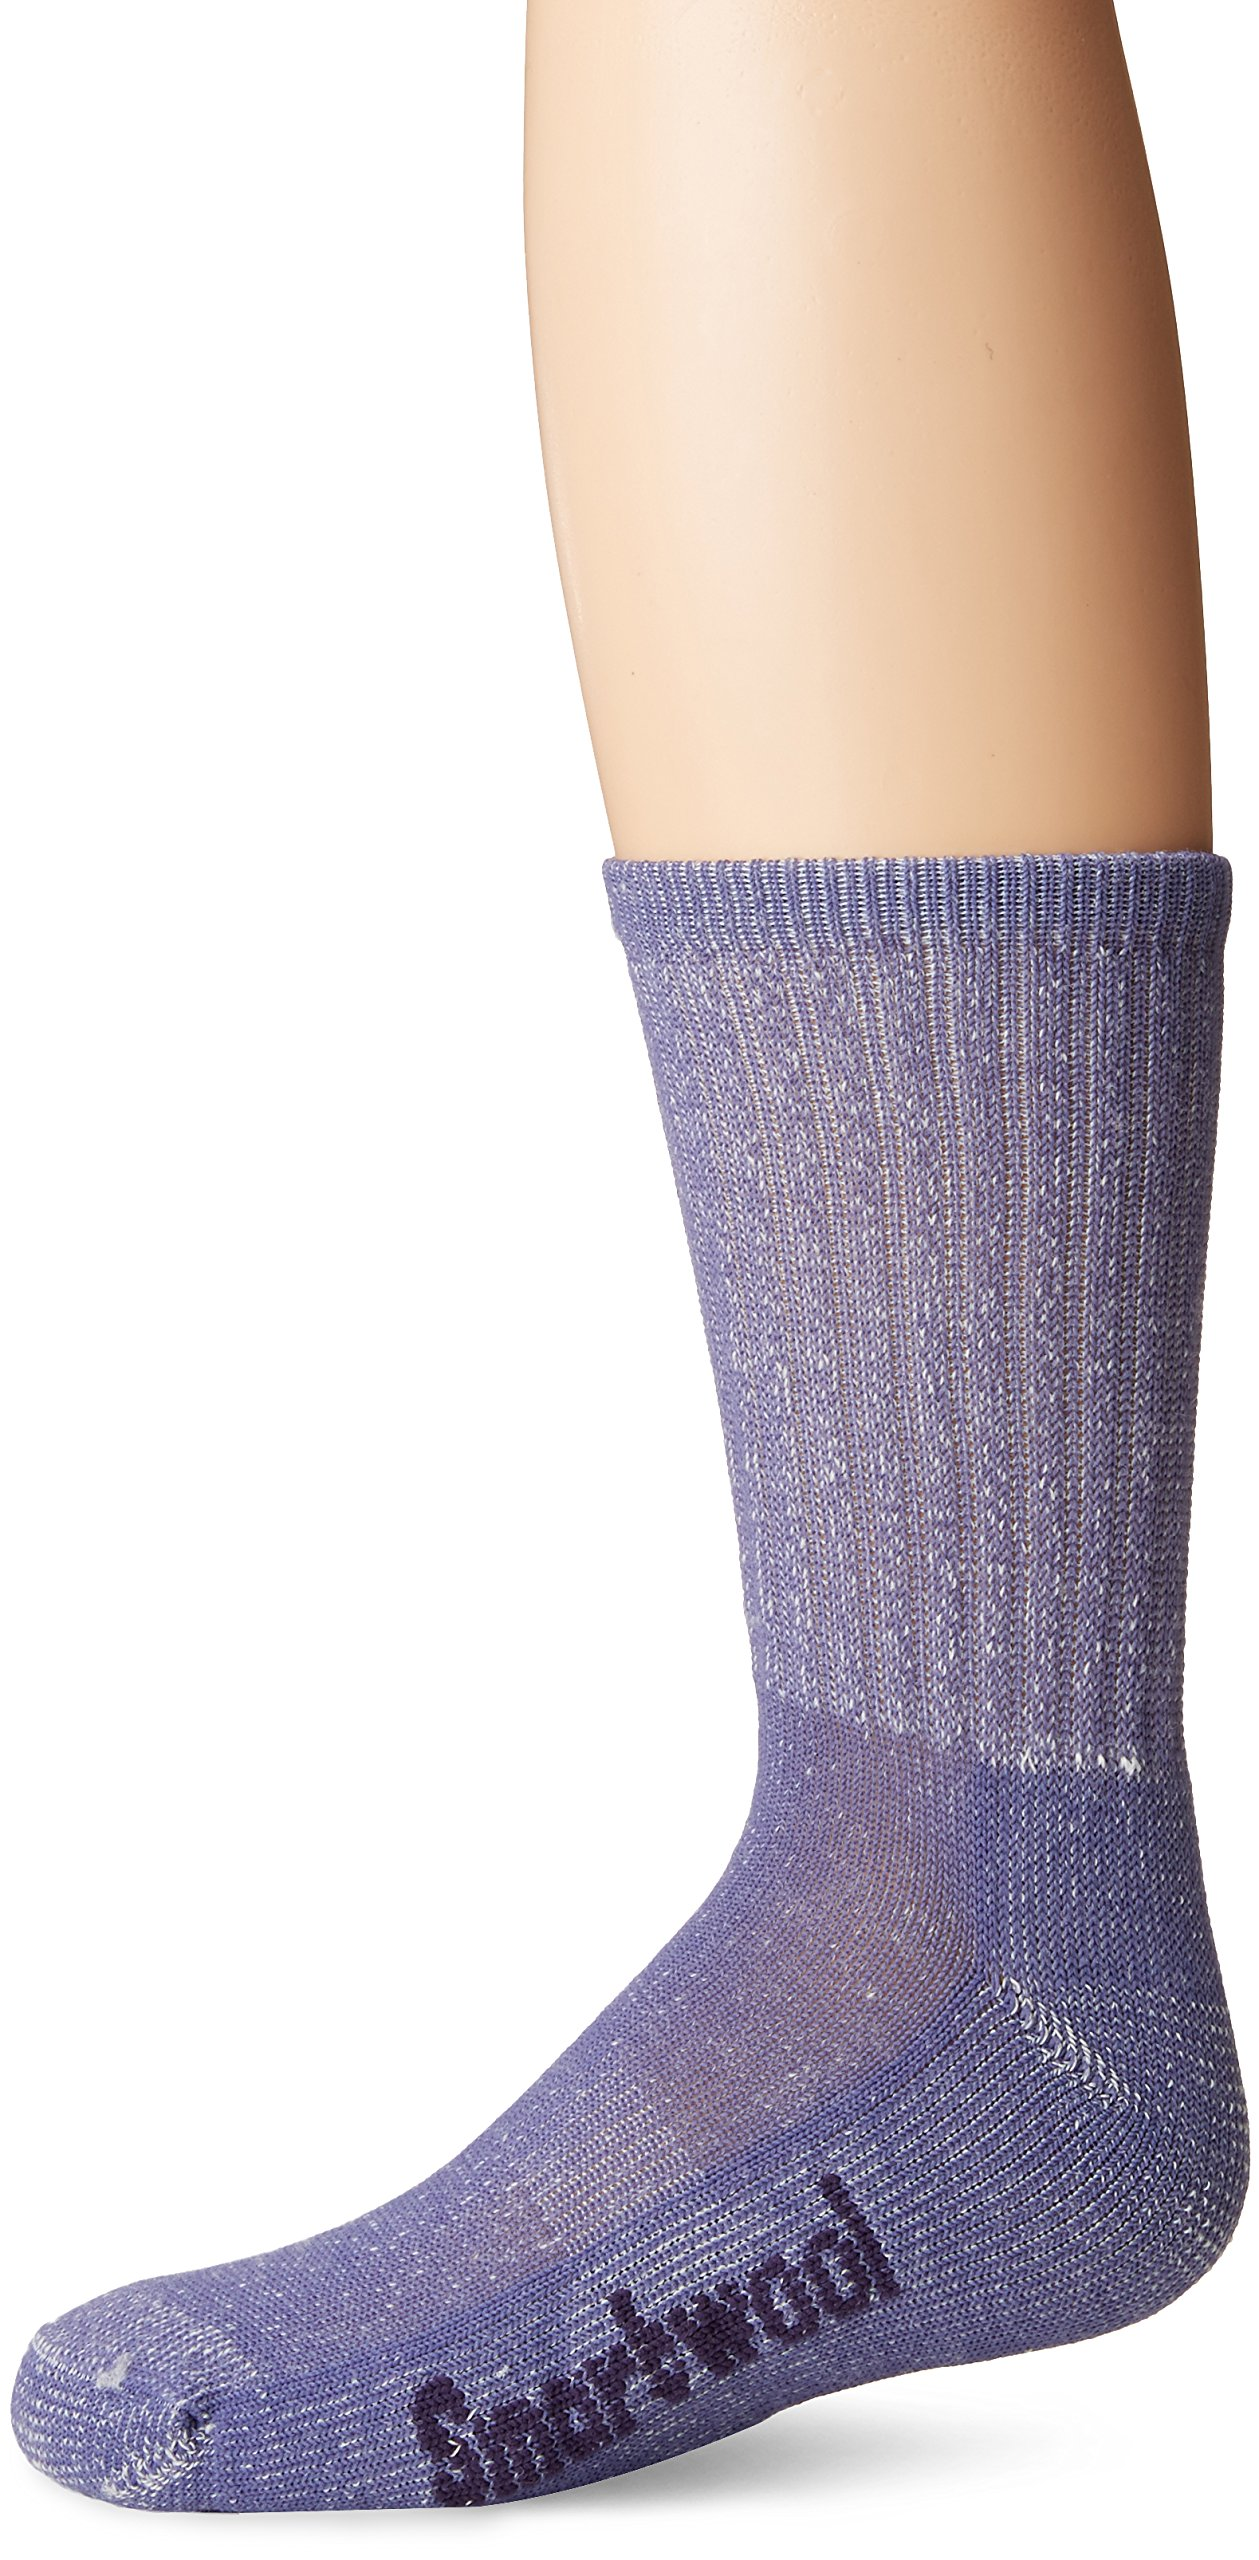 Smartwool Kids Hike Light Crew Socks 1